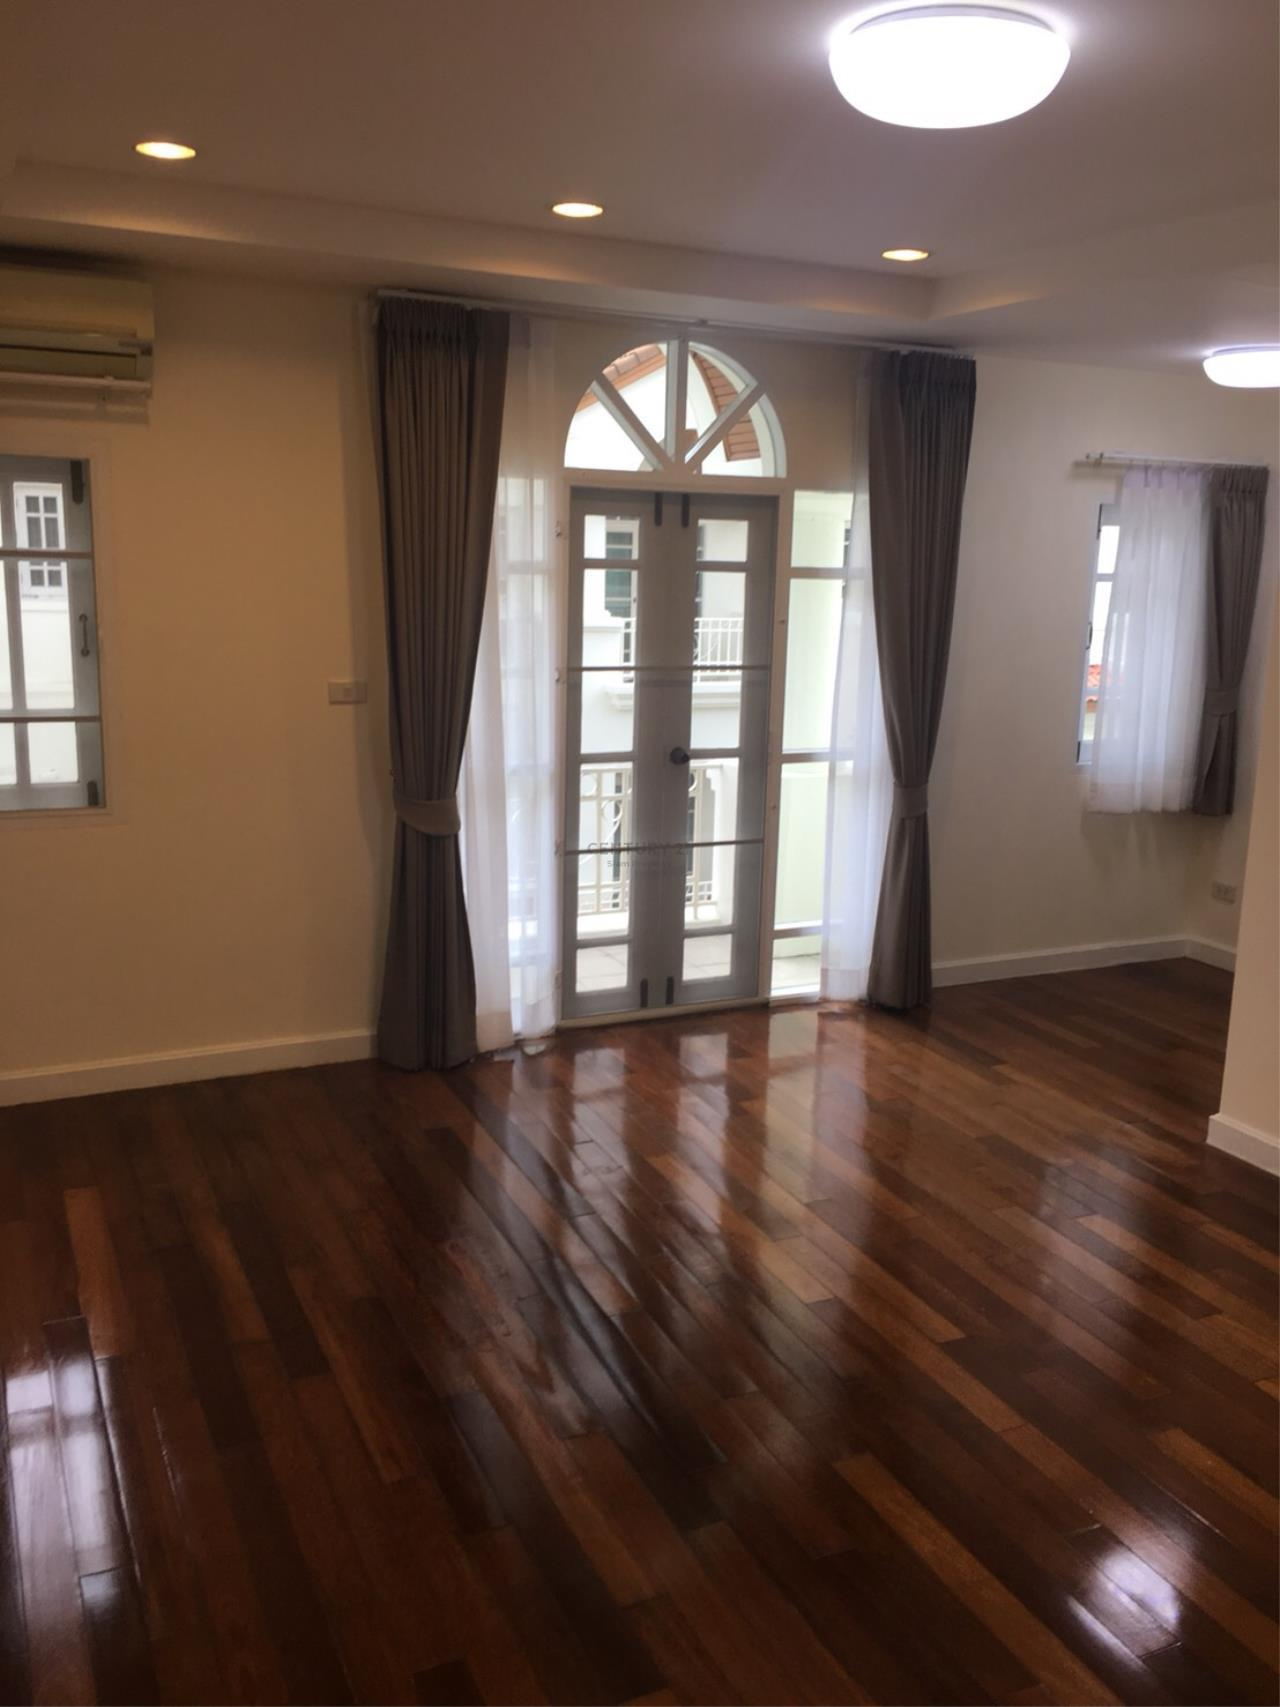 Century21 Siam Property Agency's Townhouse for rent Ekkamai 8